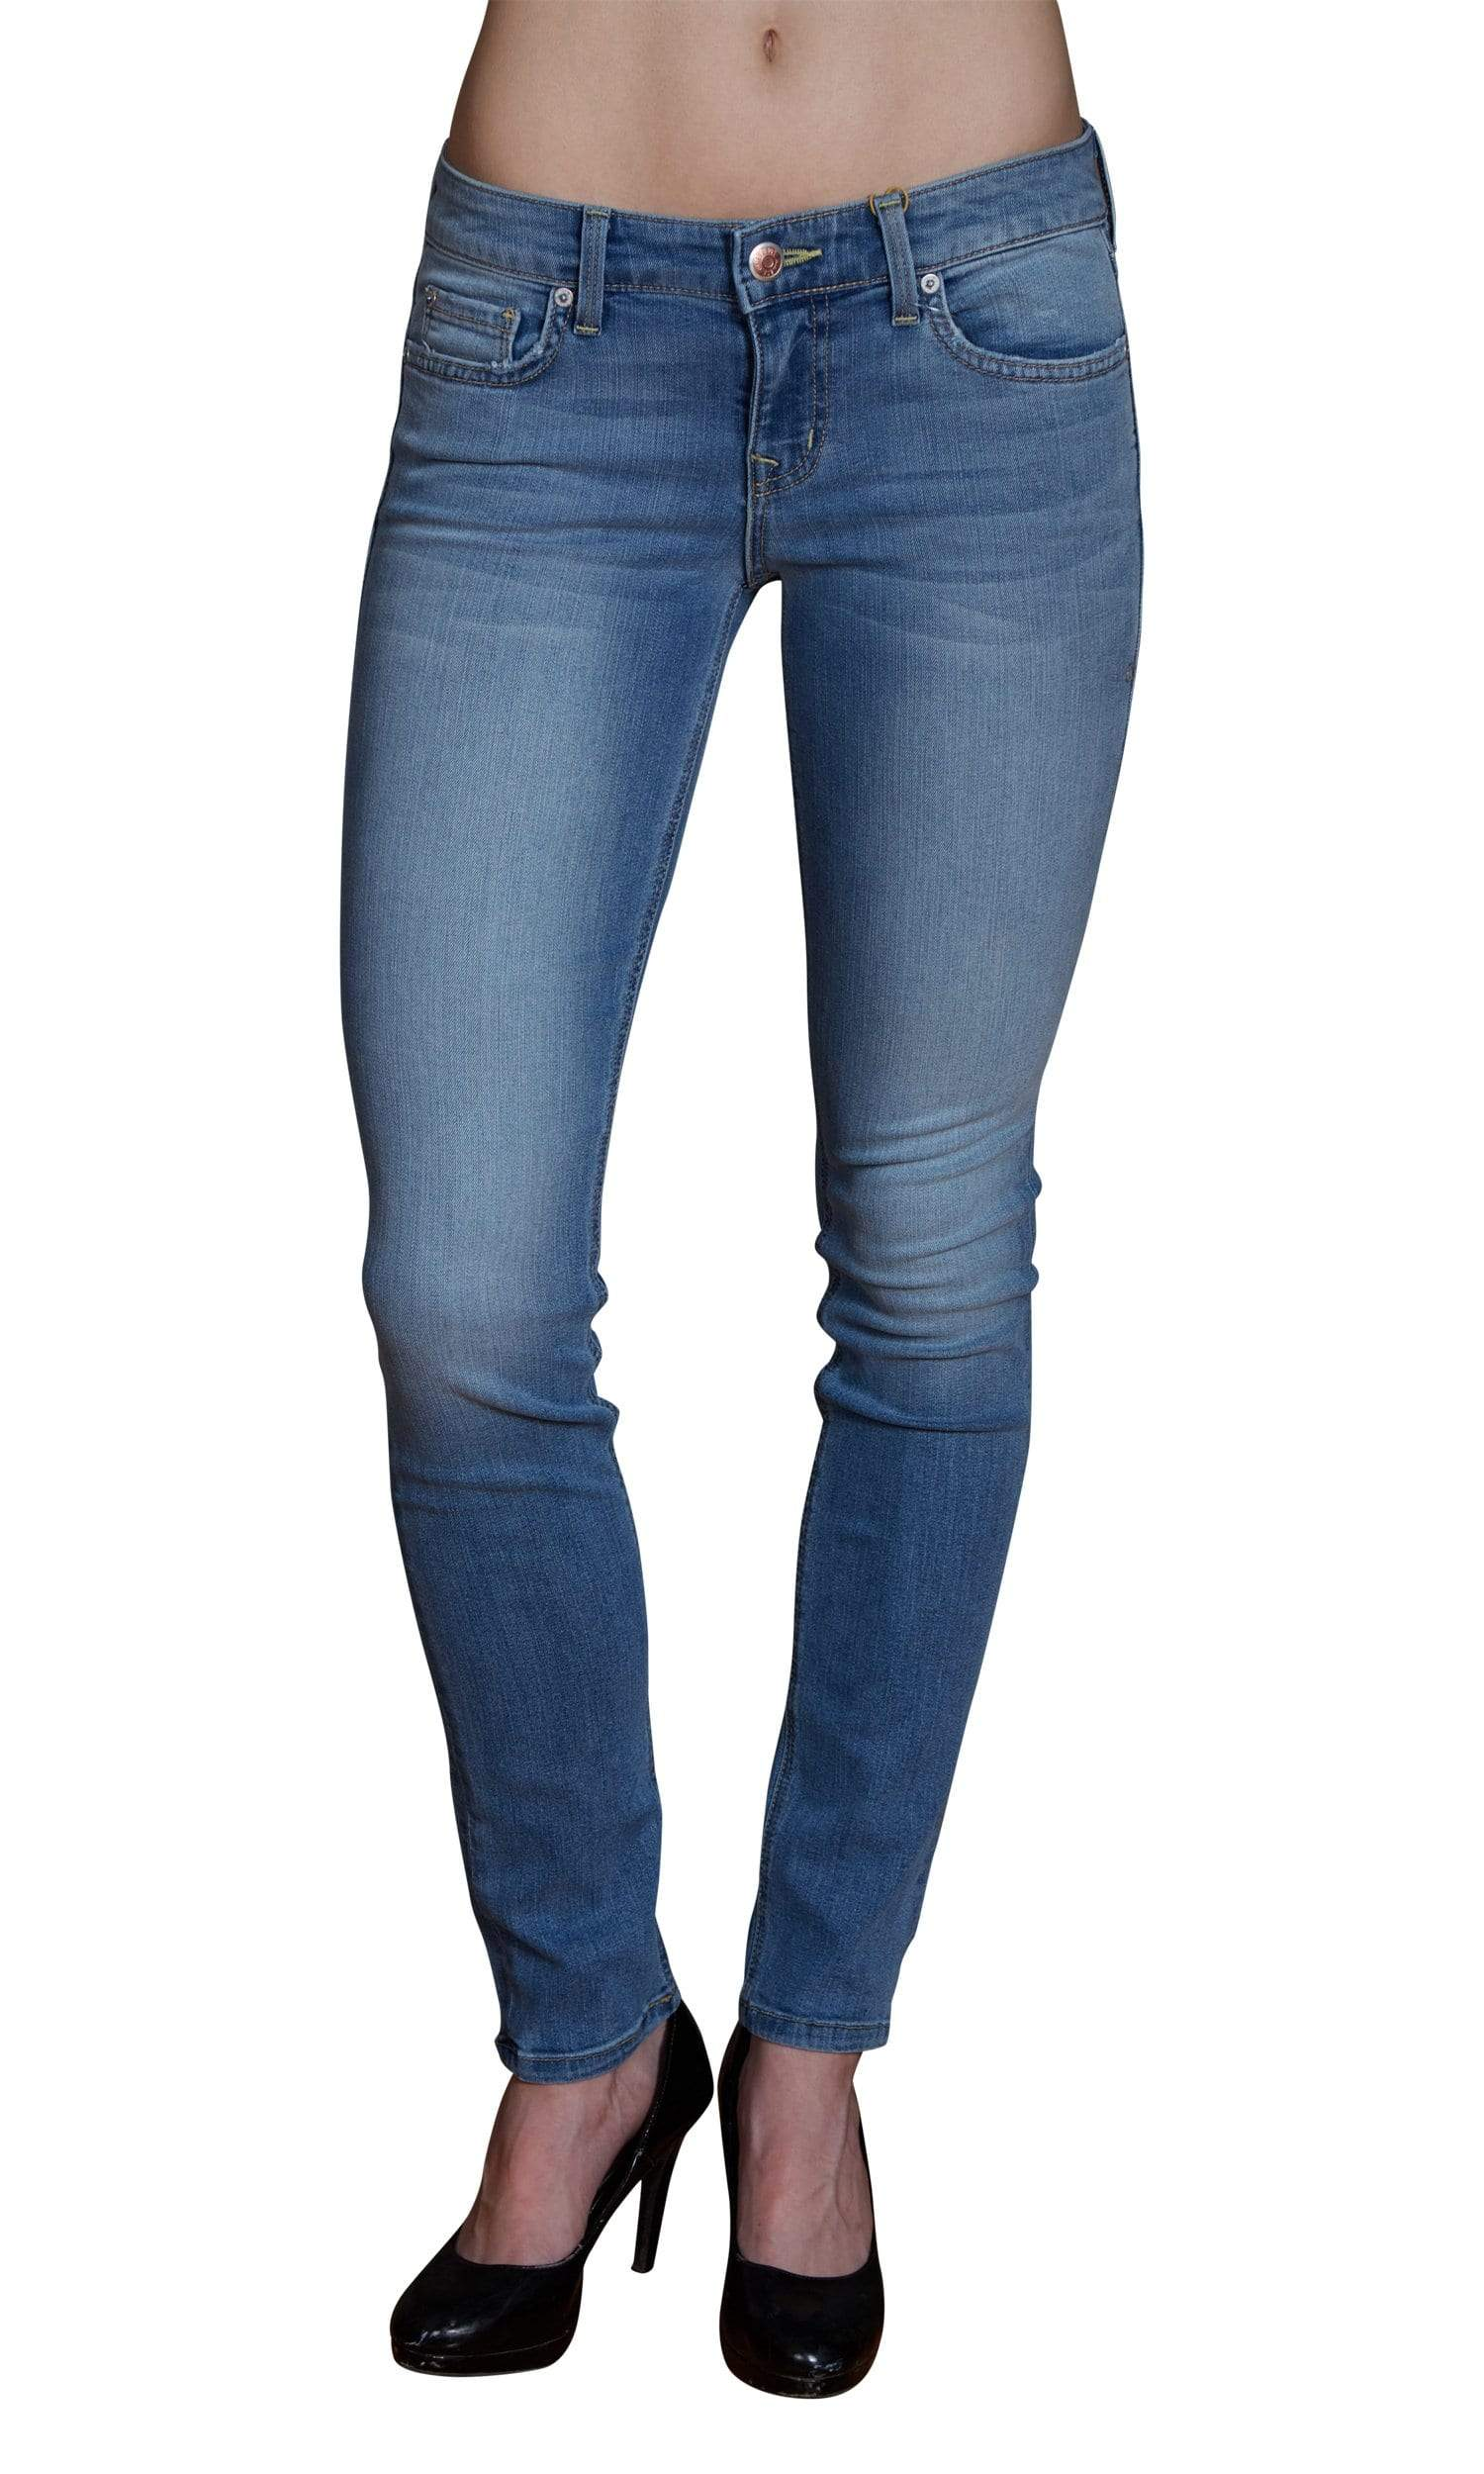 Level 99 Liza Skinny Denim - Water